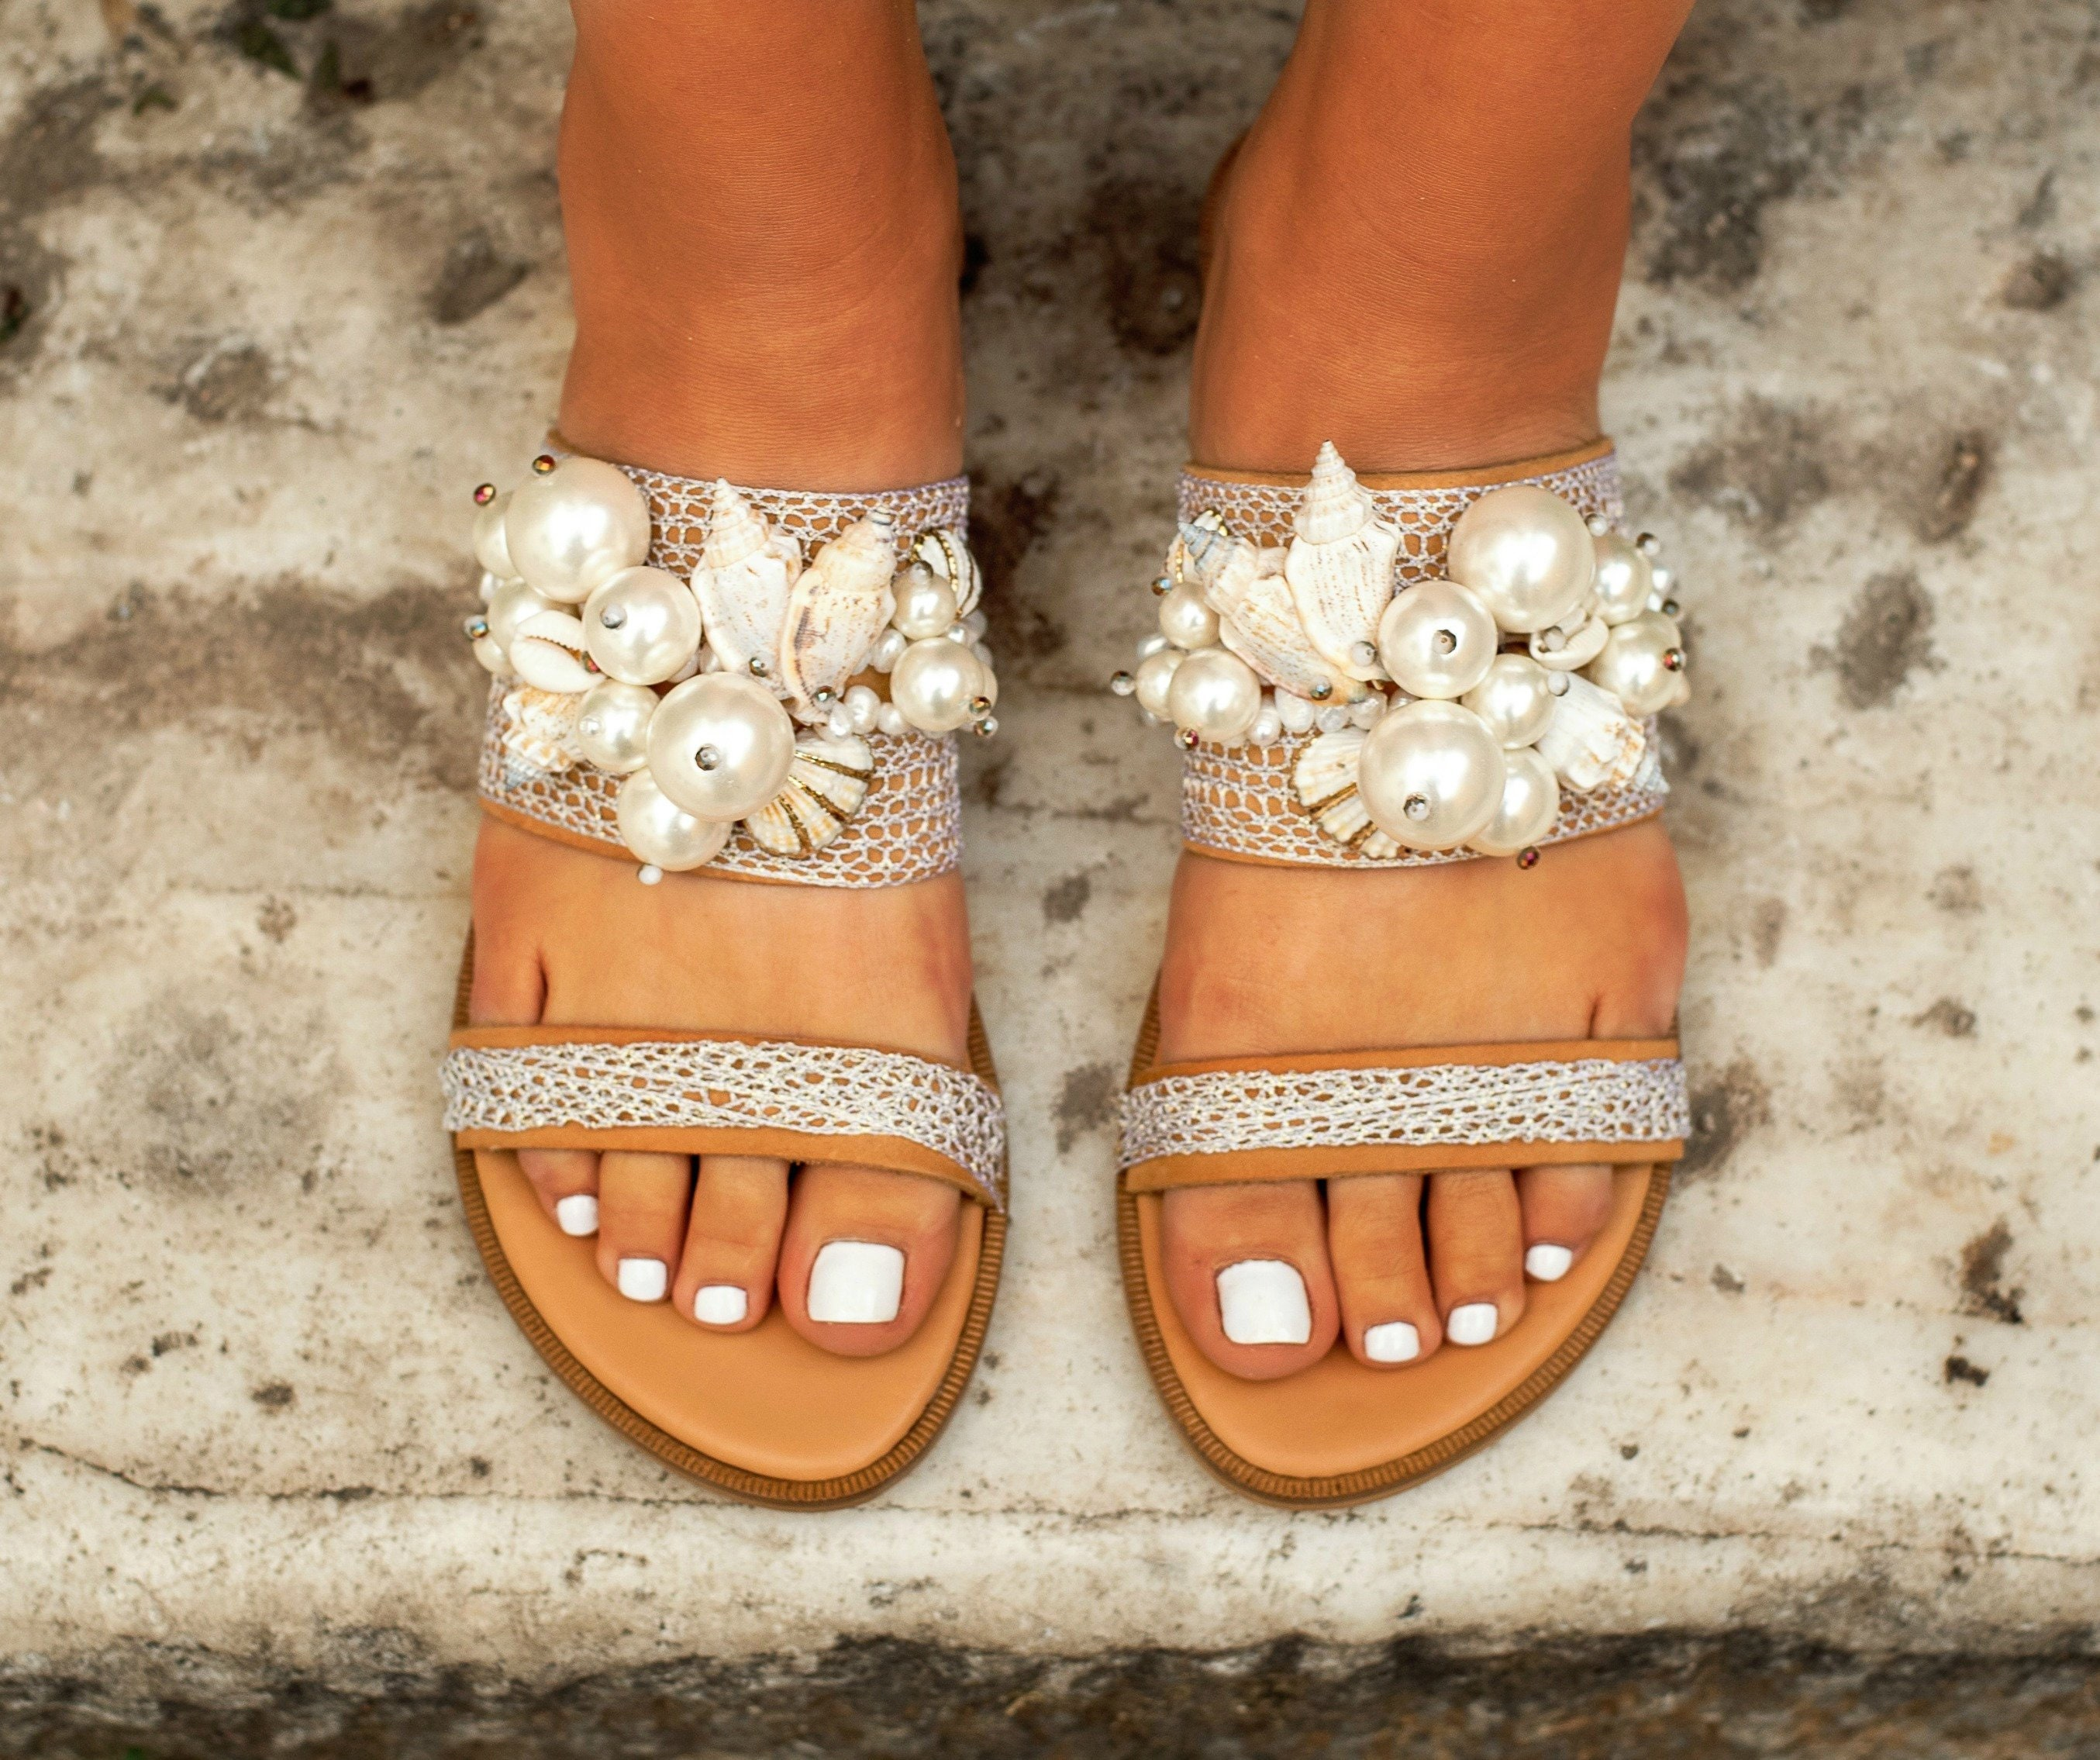 Wedding Sandals For Bride.Sandals With Pearls Flat Wedding Sandals Bridal Sandals Bridal